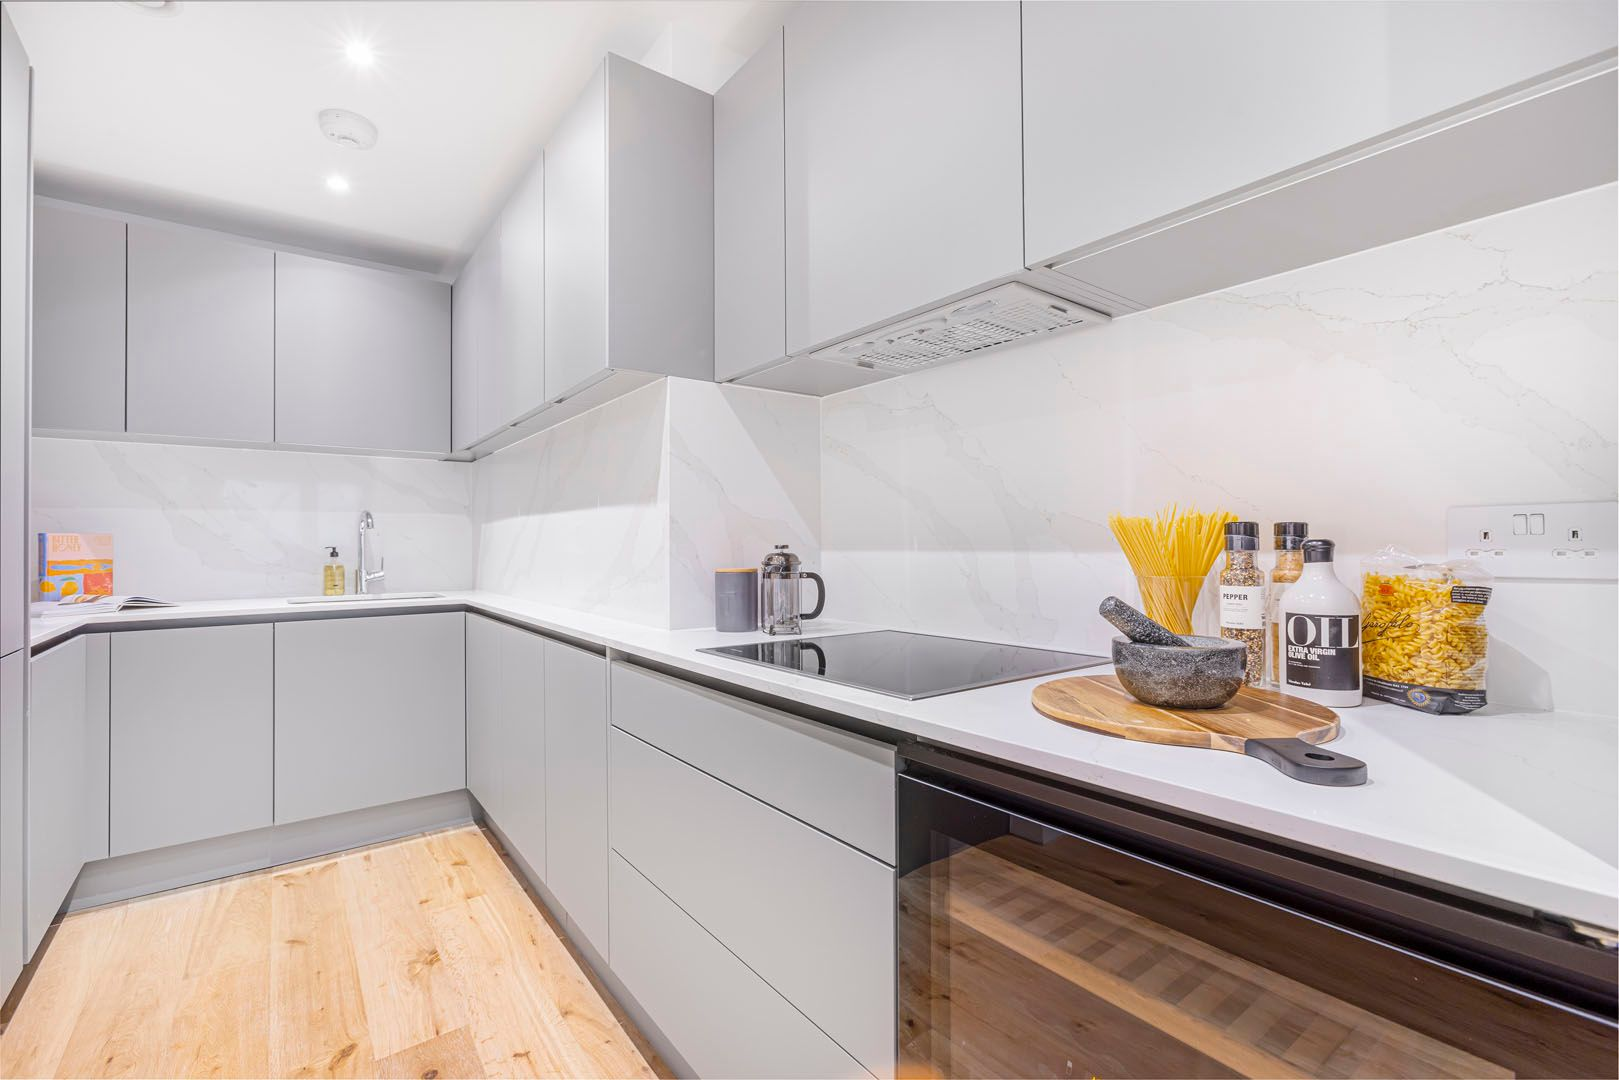 2 Bedroom apartment to rent in London SK3-FH-0063